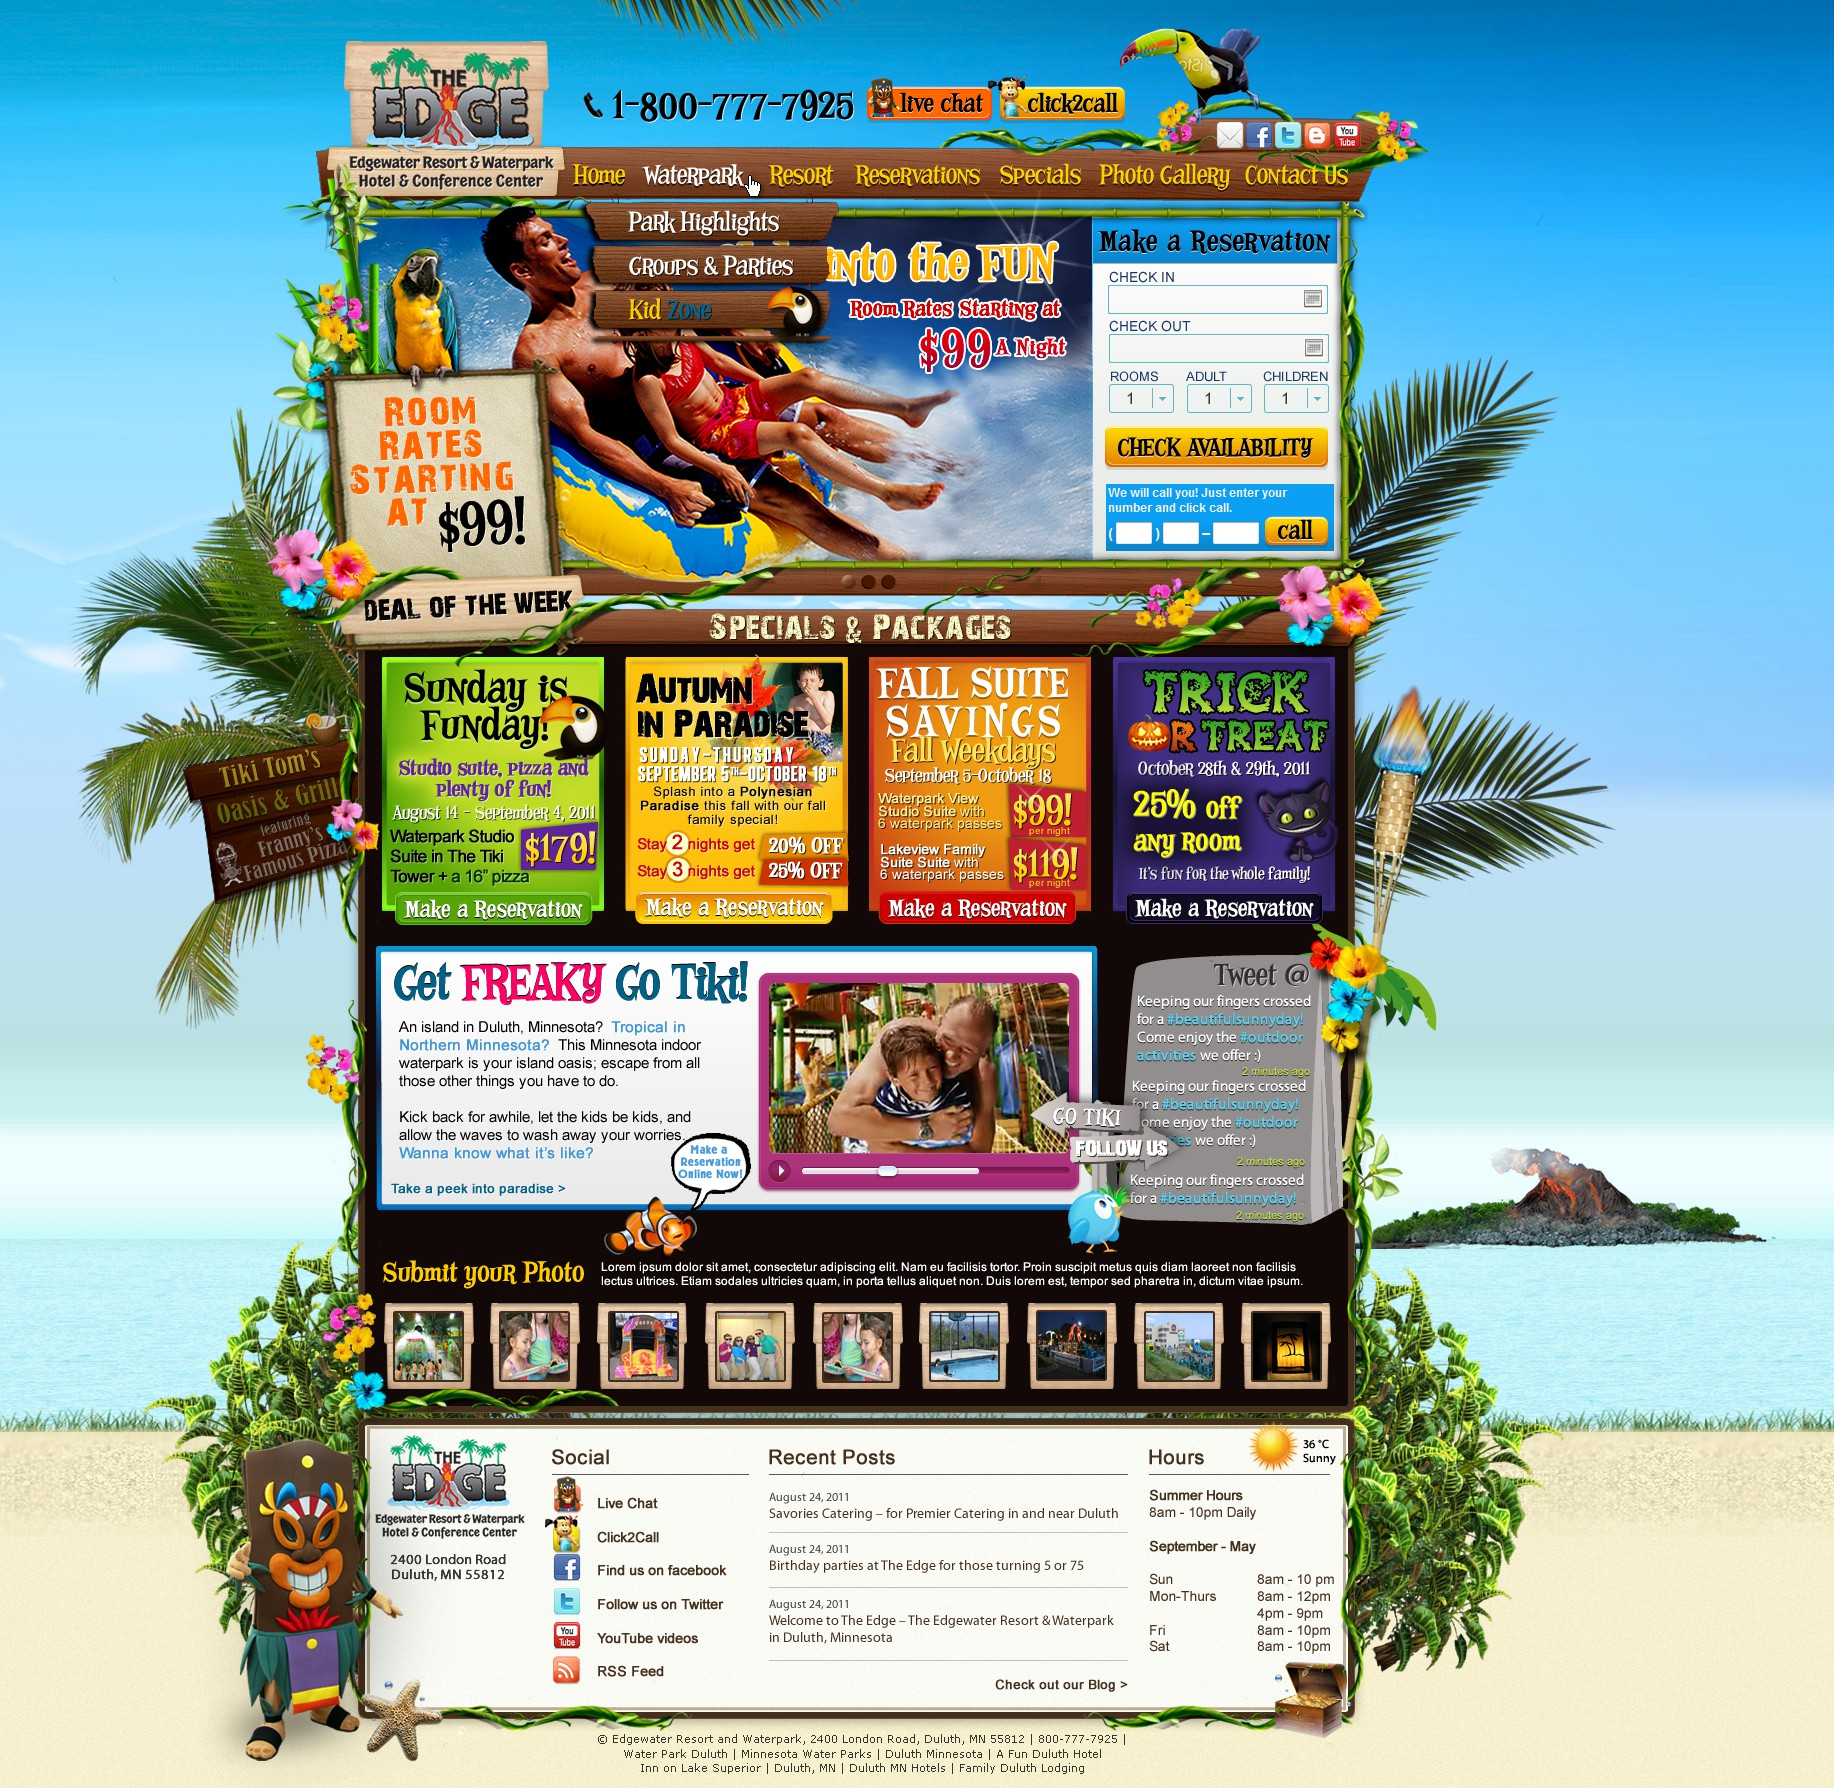 Edgewater Resort & Waterpark Hotel & Conference Center needs a new website design